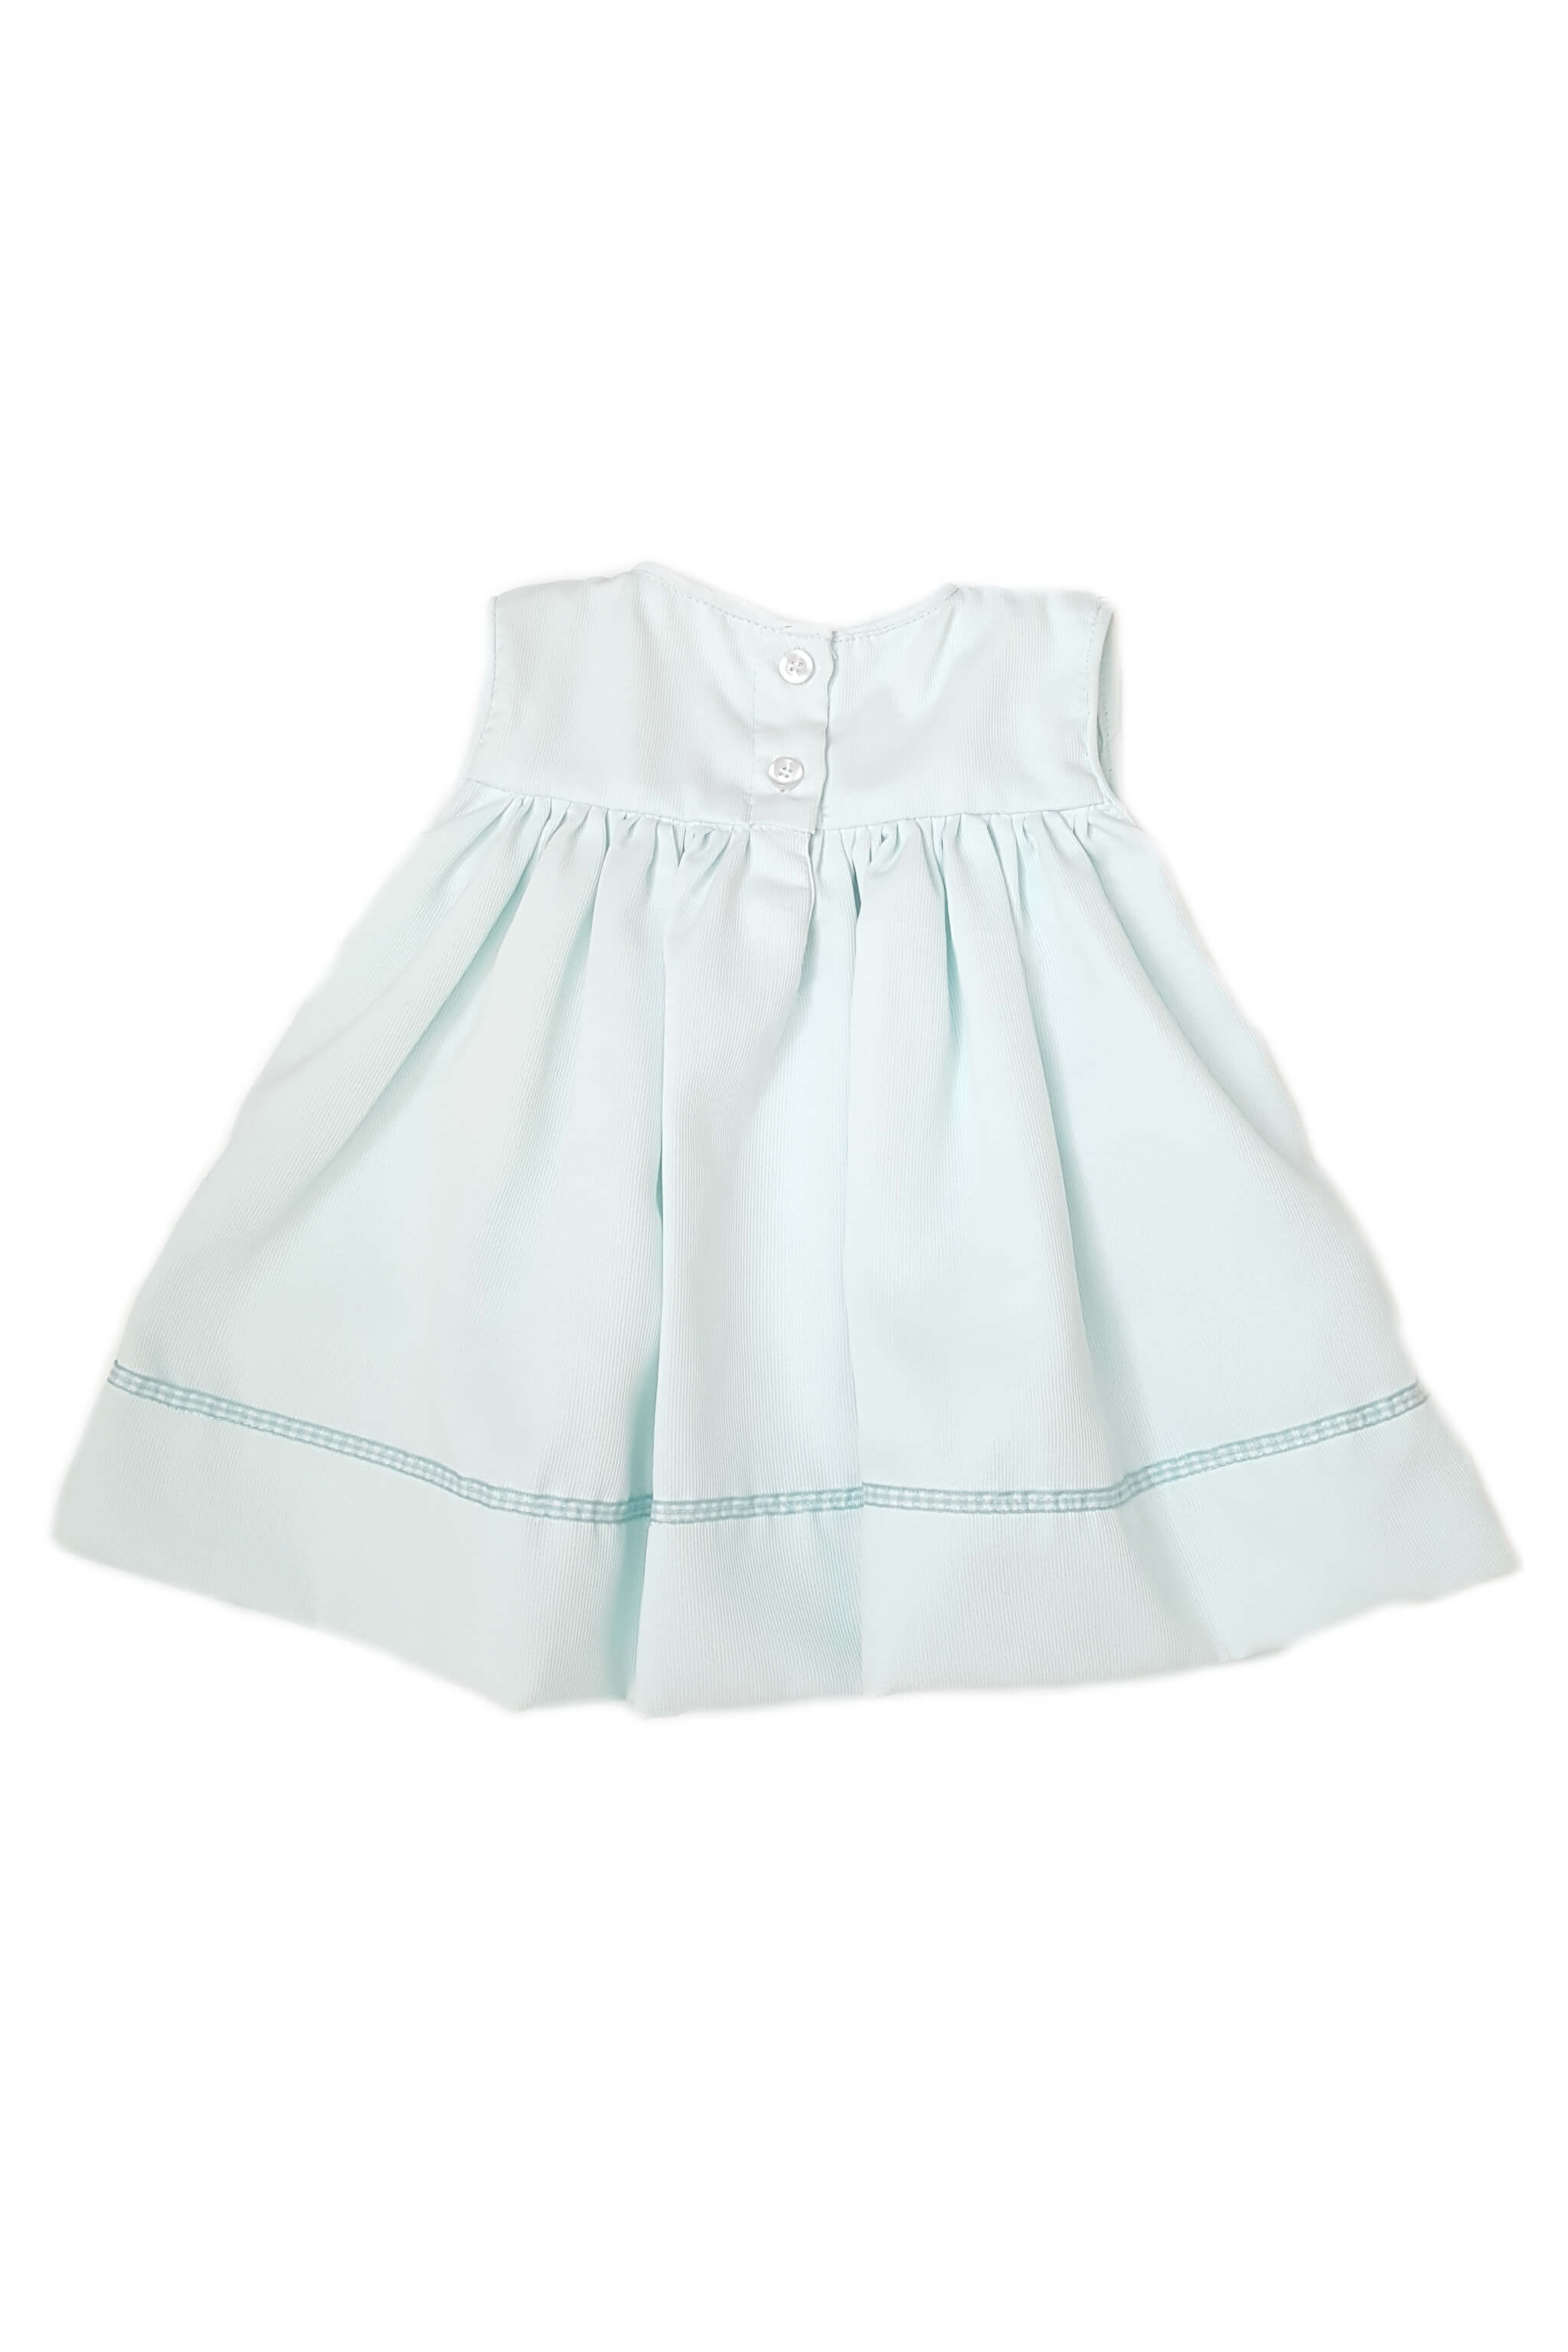 Back of pale mint green dress with hand-embroidered white collar and mint satin trim with button back and back opening for a baby girl